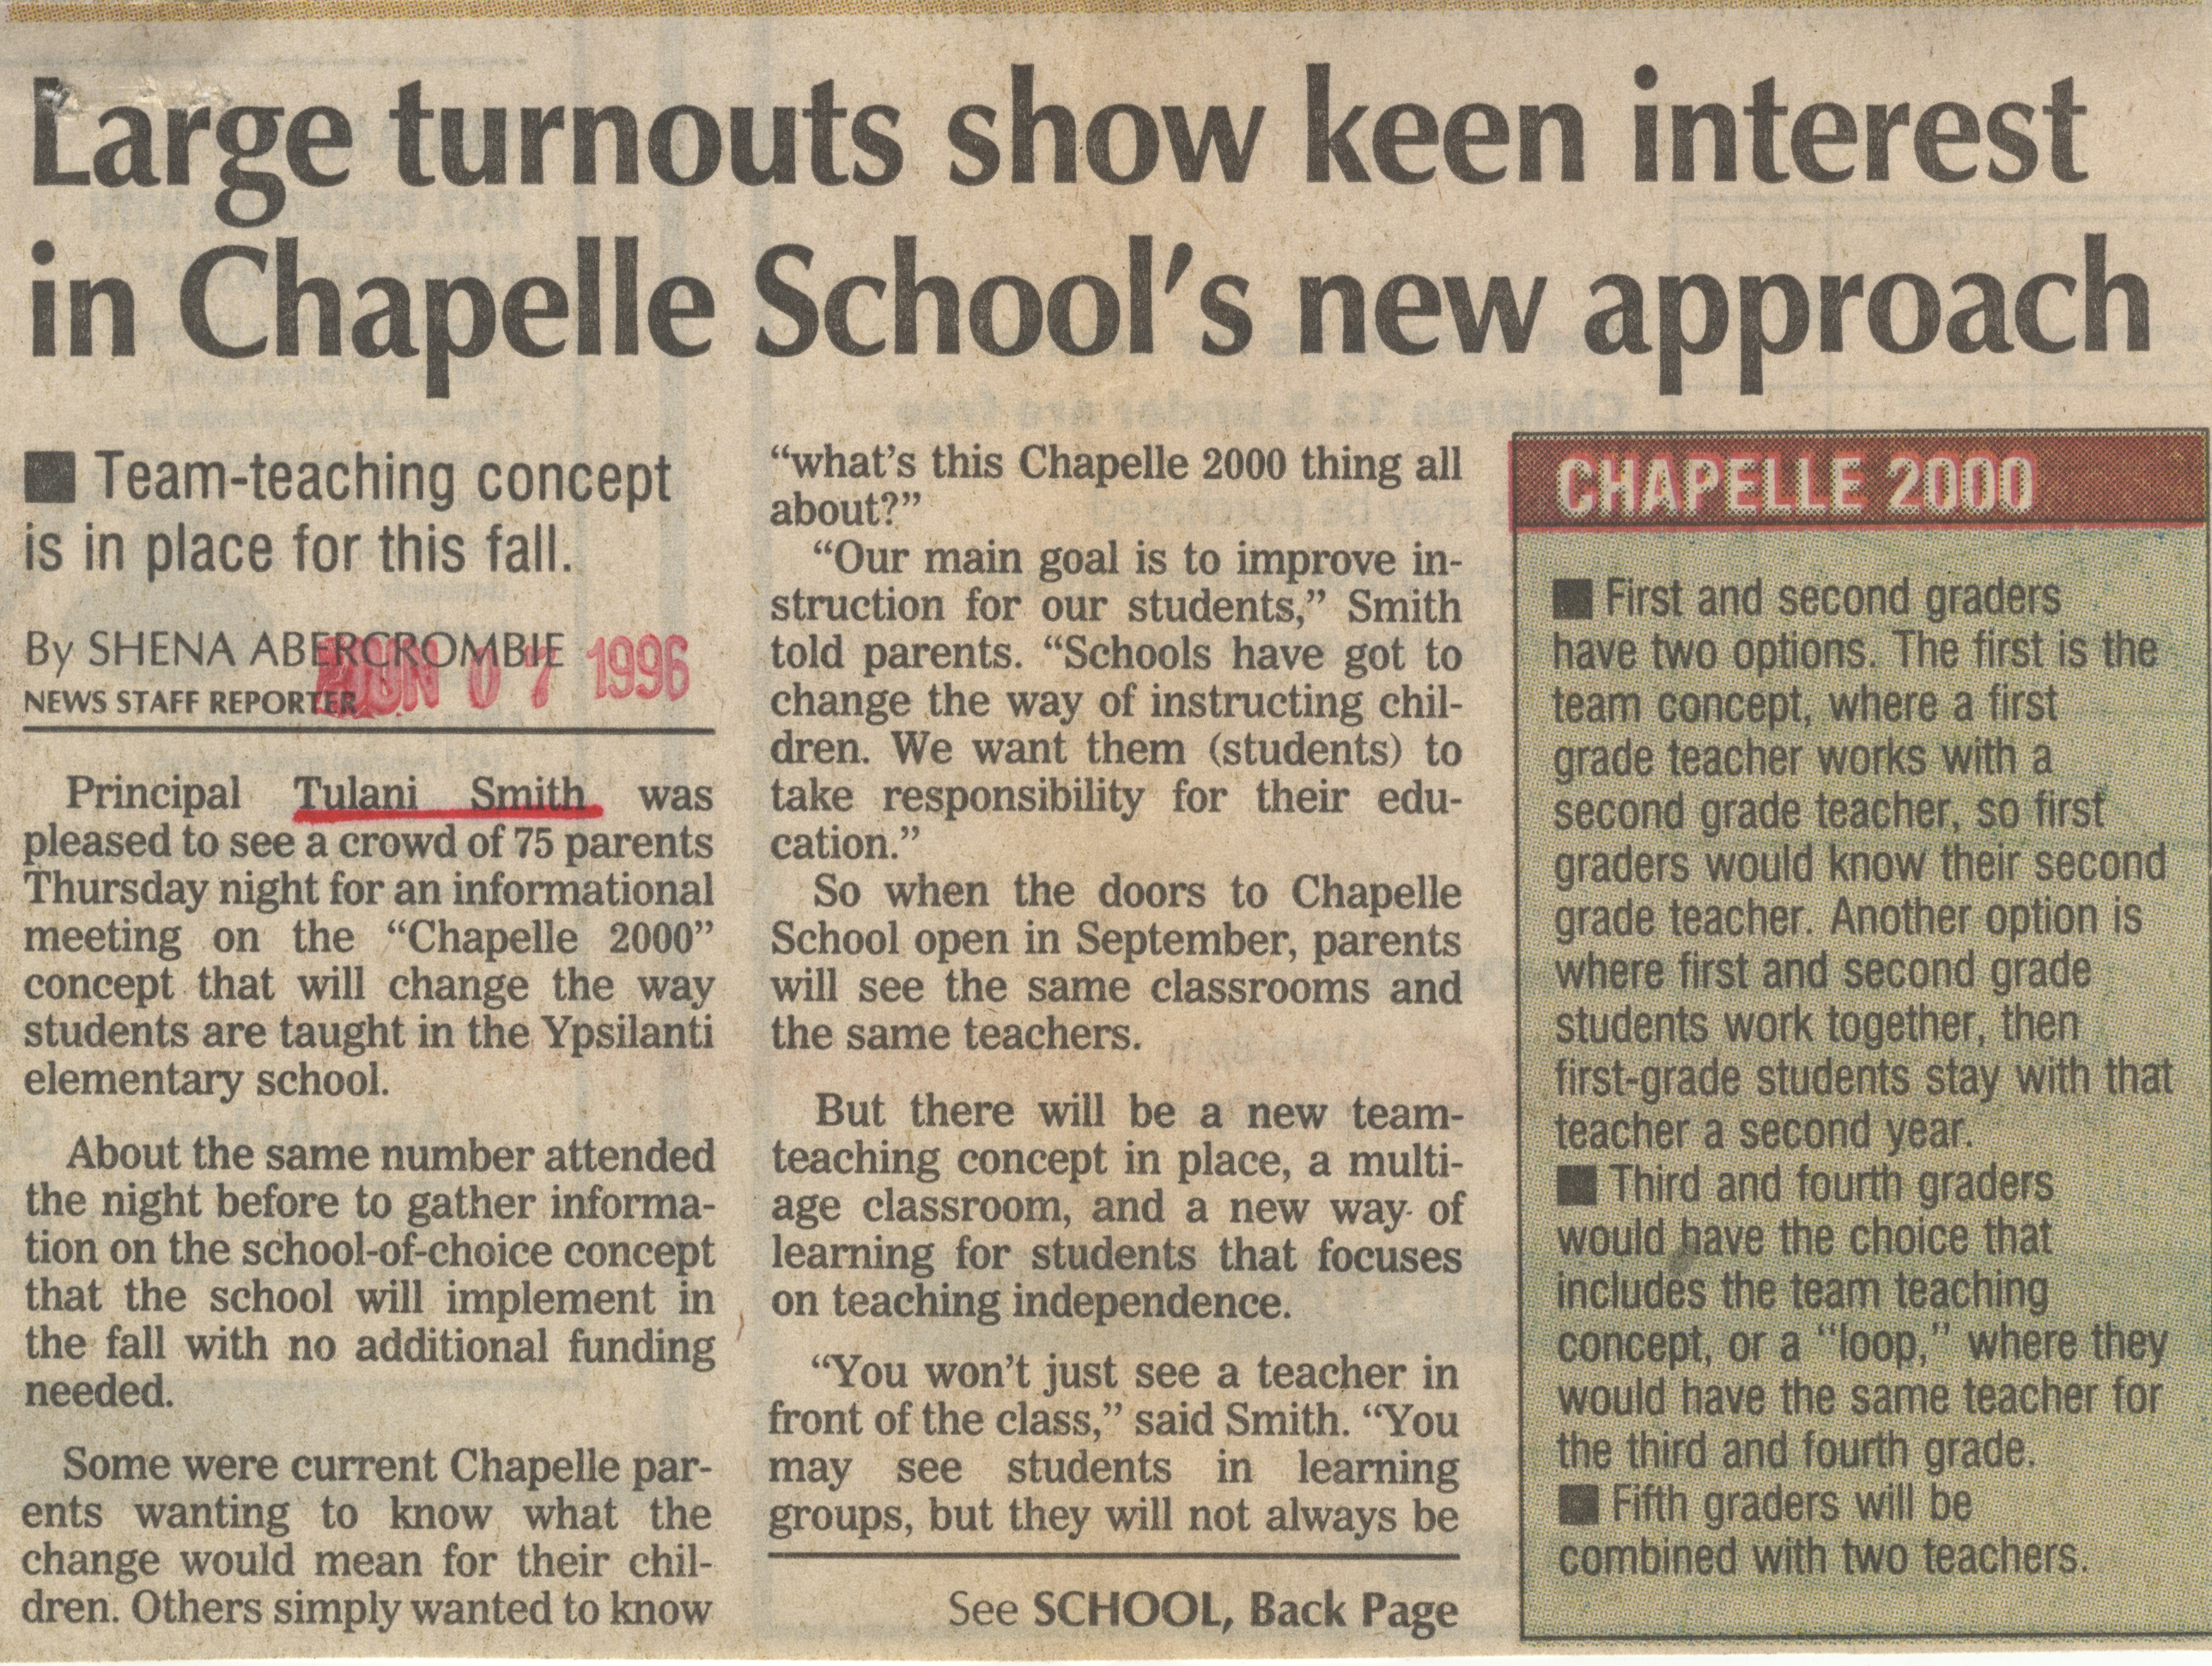 Large Turnouts Show Keen Interest In Chapelle School's New Approach image